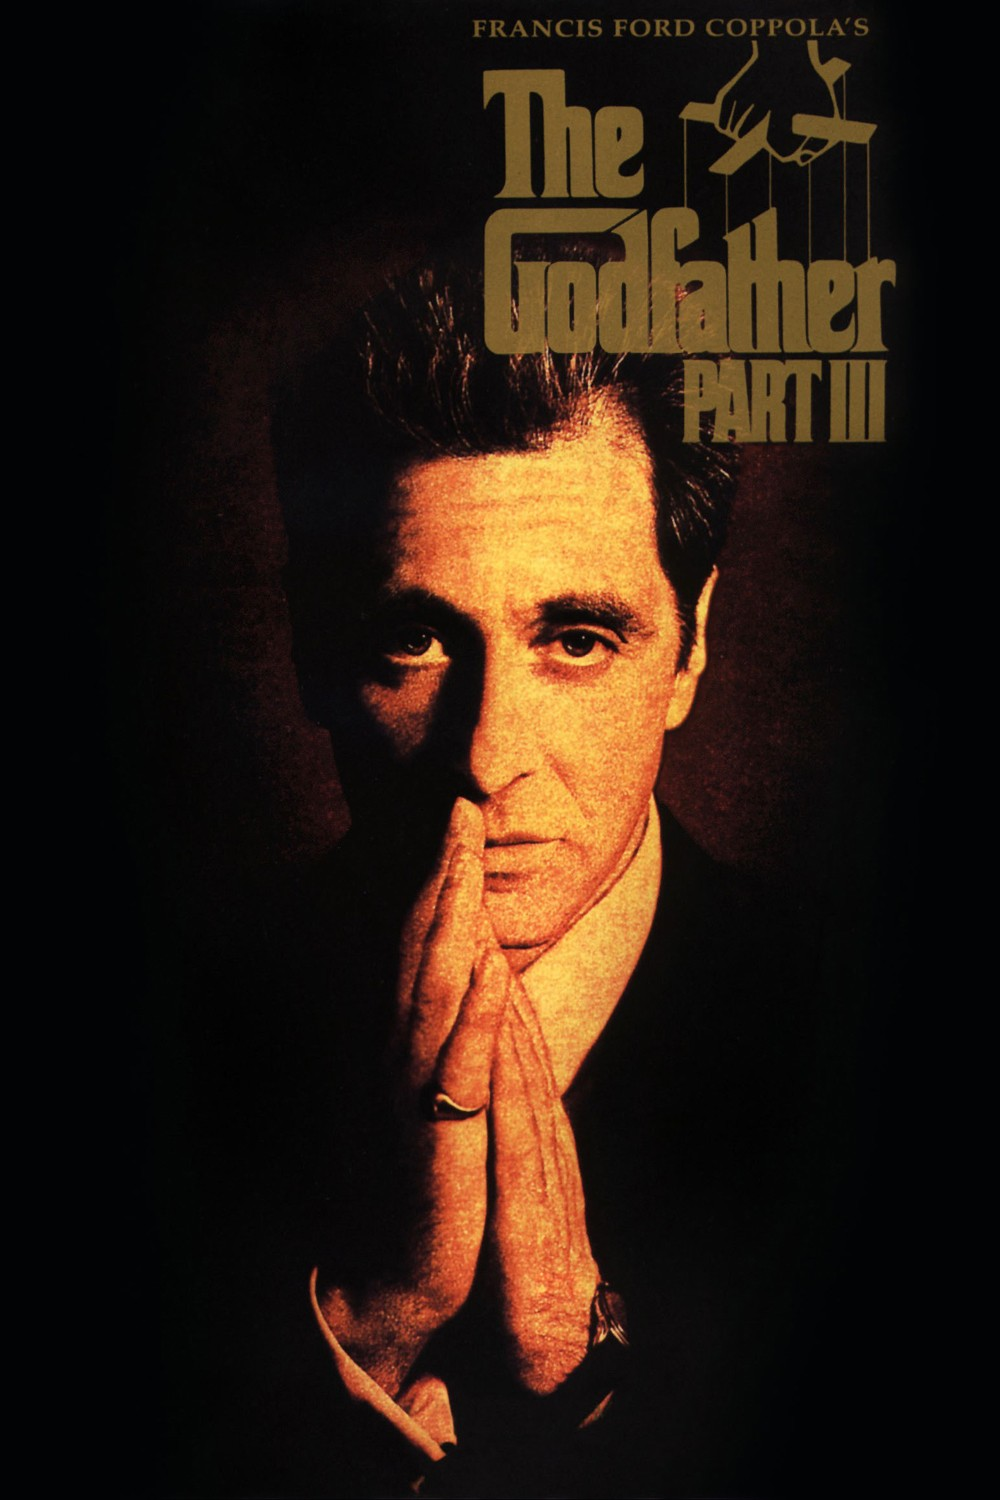 The Godfather Part Iii 1990 Rotten Tomatoes